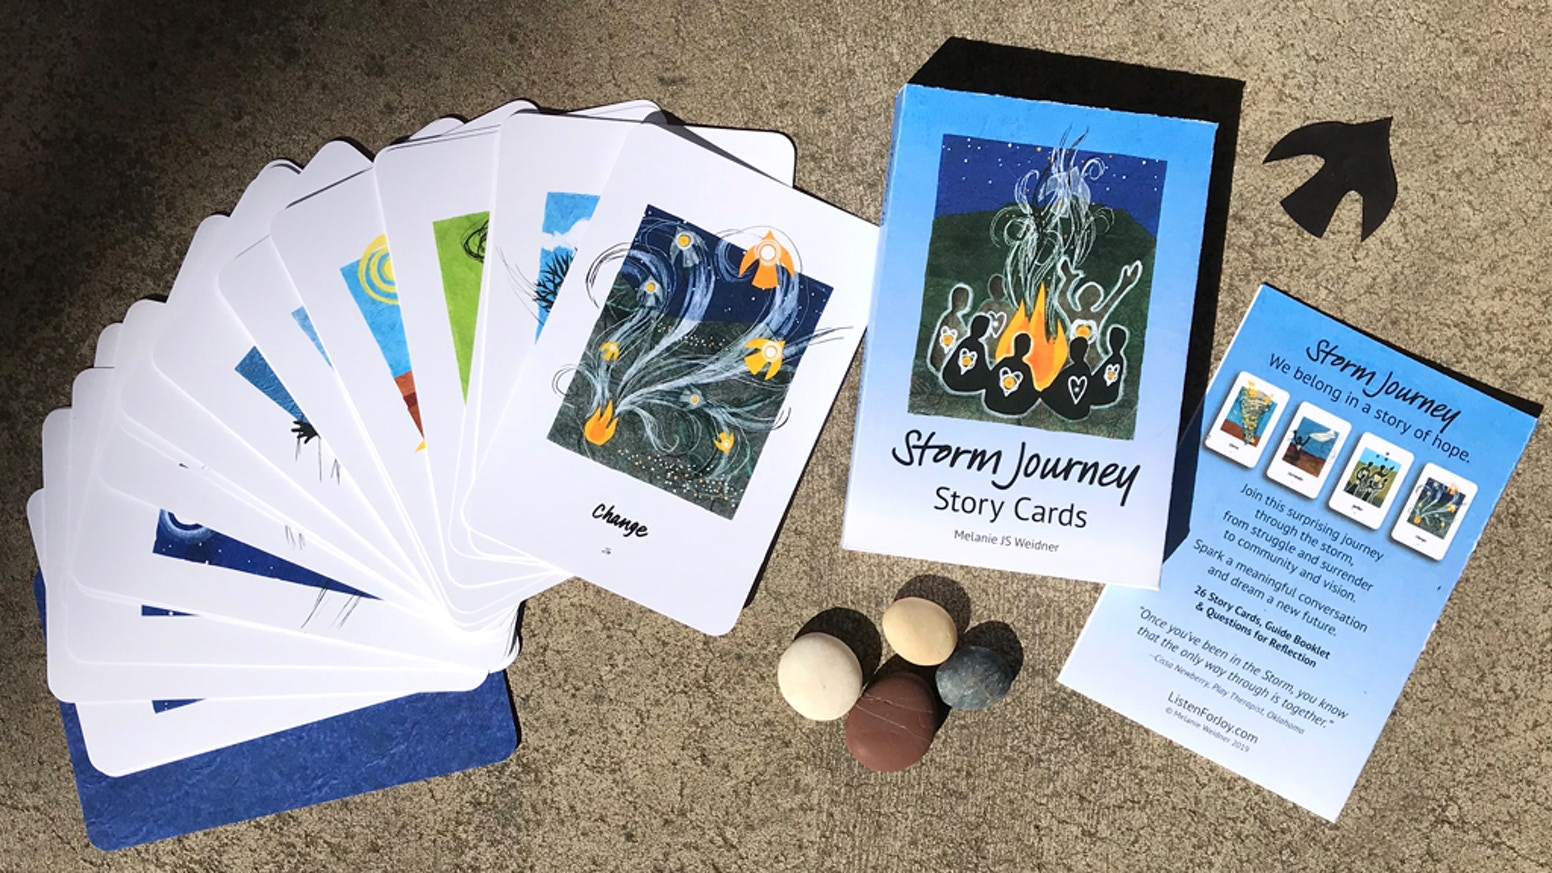 We belong in a story of hope. Join this surprising journey through storm, from struggle and surrender to community and vision. Spark a meaningful conversation and dream a new future. (26 Story Cards, Guide Booklet, & Conversation Questions.)